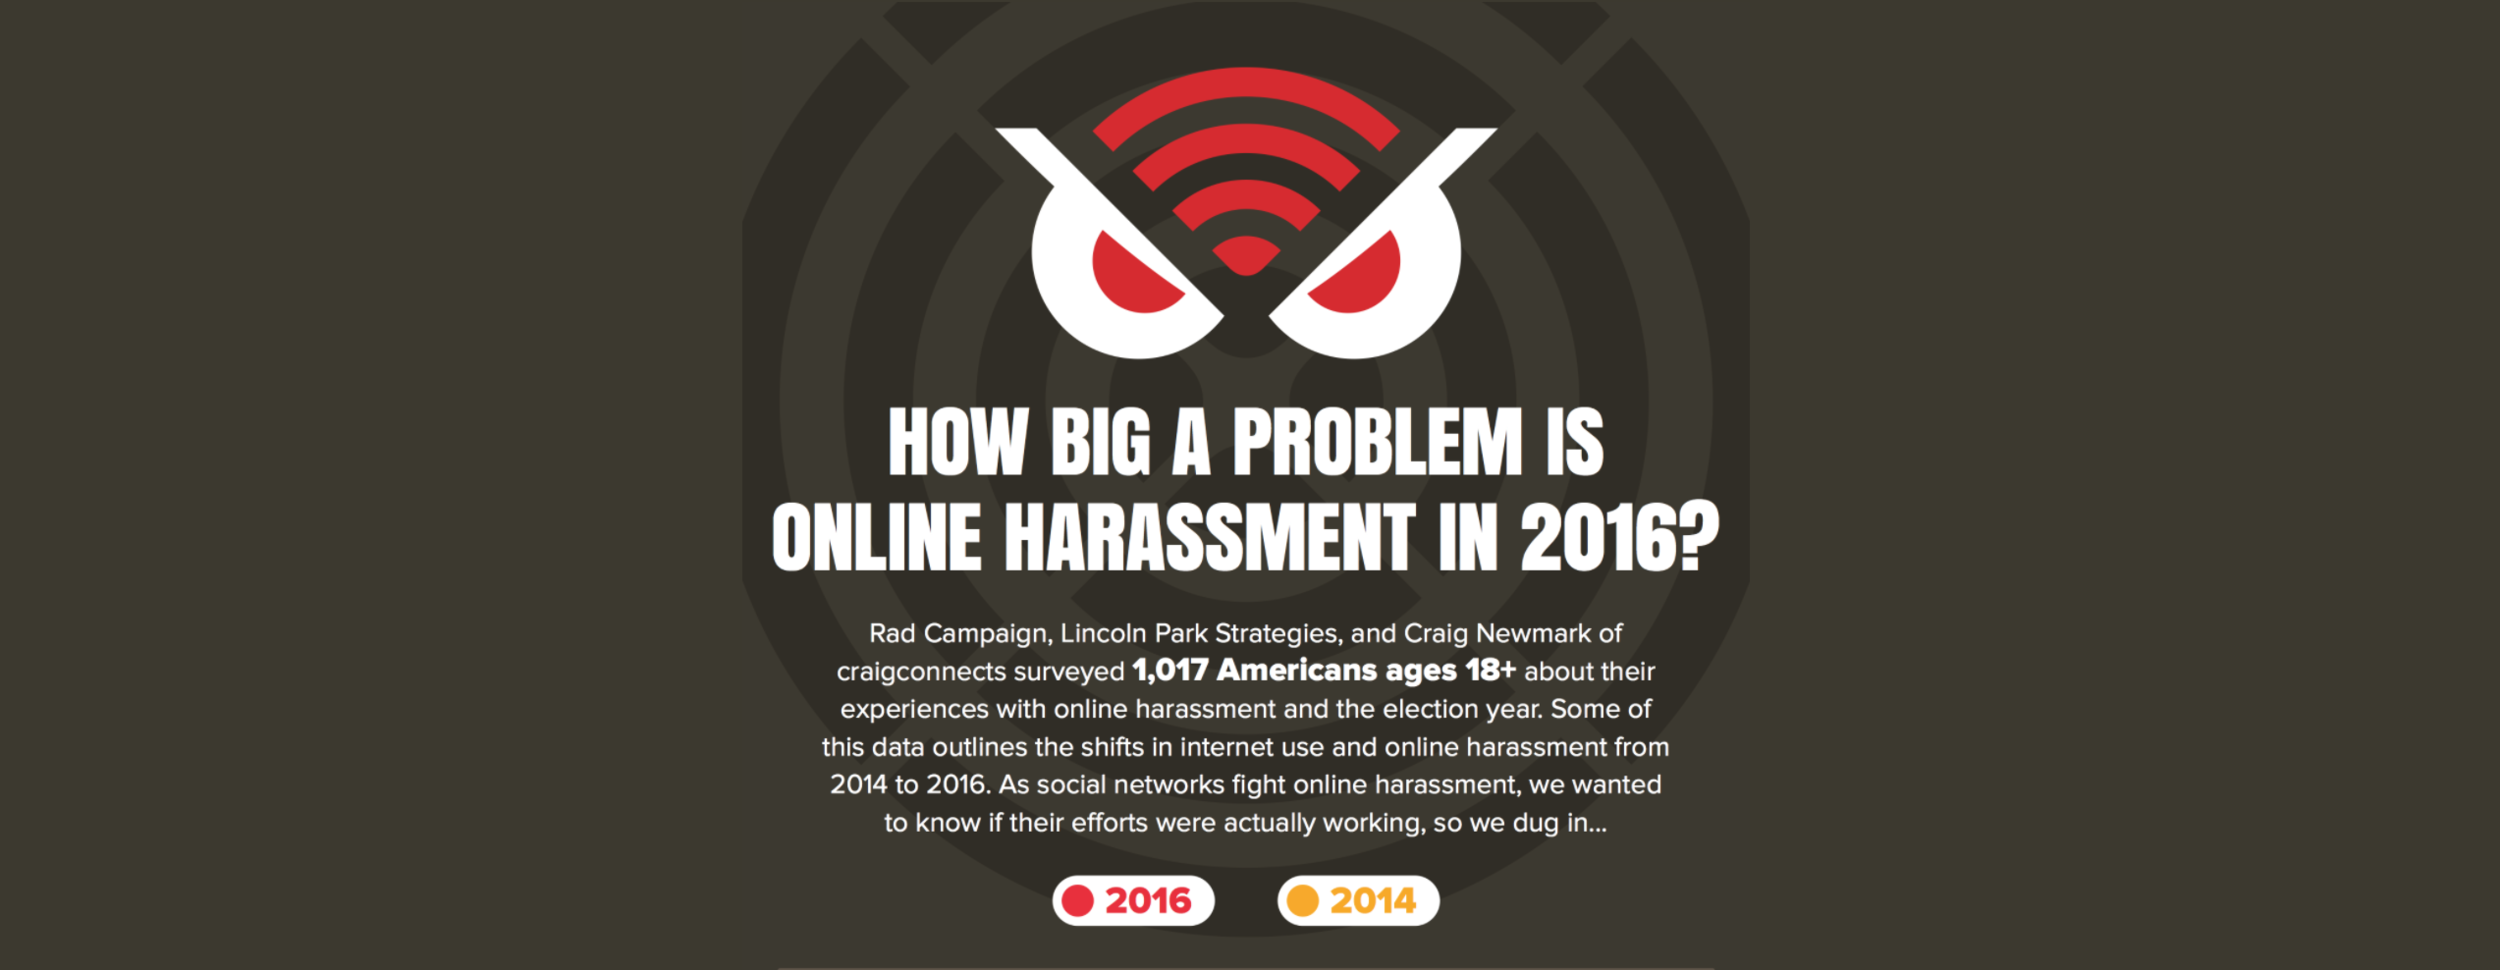 "New Poll Reveals: Online Harassment's Still A Problem Despite Action Taken By Social Networks   Folks, two years ago, the Craig Newmark Philanthropic Fund, Rad Campaign, and Lincoln Park Strategies polled 1,007 Americans to figure out how much people were harassed online. Recently a comparison poll was conducted to see how things have changed. The data that was gathered was put into an infographic, which you can check out here. The question: Are social media outlets doing enough to keep harassers out?  What was discovered is that sexual harassment has decreased, but political harassment's up from 16% to 30%. You may have heard about Ghostbusters 2 star Leslie Jones and her terrible experiences with online harassment, particularly racist and sexist hate speech. In an interview with Seth Meyers, Jones said she teamed up with the CEO of Twitter to get several accounts shut down. Now, she's making an effort to distinguish the difference between hate speech and freedom of speech.  The poll also revealed that the majority of people who are harassed online are people of color. That's really concerning and illustrates why we need to do better.  It was also found that women want stricter laws to stop online harassment. In 2014, the poll found that the same percentage of men and women (16%) thought online harassment laws were ""just right."" This year, 16% of men and only 9% women are content with current laws regarding online harassment.   ""What we're seeing by examining trends longitudinally is that online harassment is not an easy fix. Despite some efforts by social networks to incorporate policies to stop online harassment, the problem is not going away,"" said social media consultant Allyson Kapin of Rad Campaign, a partner in the online harassment poll. ""Clearly we need to institute better tools, algorithms, and policies to support and empower people online, such as better methods for reporting harassment, as well as more effective and timely responses from the social networks themselves.""  Here are some key findings from the 2016 poll:  - Across all platforms, Facebook is the dominant location for harassment, even among heavy Twitter users.  - Tinder users report the highest levels of online harassment. 62% of daily Tinder users (3/4 of whom are millennials) say that they've been harassed online.  - Harassment is not anonymous. In almost 2 out of 3 instances (61%), respondents report knowing their harassers.  - Younger people are harassed more than older folks.  47% of millennials have either personally experienced harassment, or know someone who has. This percentage remains unchanged since 2014, despite policies implemented by social networks to address this.  - Women are harassed more than men. Of adults who reported harassment in 2016, 55% are women; 45% are men. The number for women is slightly down from 2014; for men slightly up.  - Harassment via email has increased. As more people use email daily, email harassment has risen from 20% to 25% from 2014 to 2016.  ""While there are a few pieces of good news in the data, overall we still have a long way to go to solve this pressing problem,"" said Stefan Hankin, President of Lincoln Park Strategies. ""Given the amount of attention that this issue has received over the past couple years, we would expect to see more dramatic shifts in the numbers, but that was not the case. If companies and individuals are looking to truly solve this problem, we are going to need to rethink our approach.""  Folks, we've got to continue to speak out about online harassment. It's up to all of us to do our part, to report bad actors, and encourage civility. The social media networks can't do it alone, though they've definitely got their work cut out for them. What suggestions do you have for combating online harassment?  The poll was conducted by the Craig Newmark Philanthropic Fund, Rad Campaign, and Lincoln Park Strategies. 1,017 Americans ages 18 and over were polled about their experiences with online harassment. The margin of error is ±3.07 percent at the 95 percent confidence level."